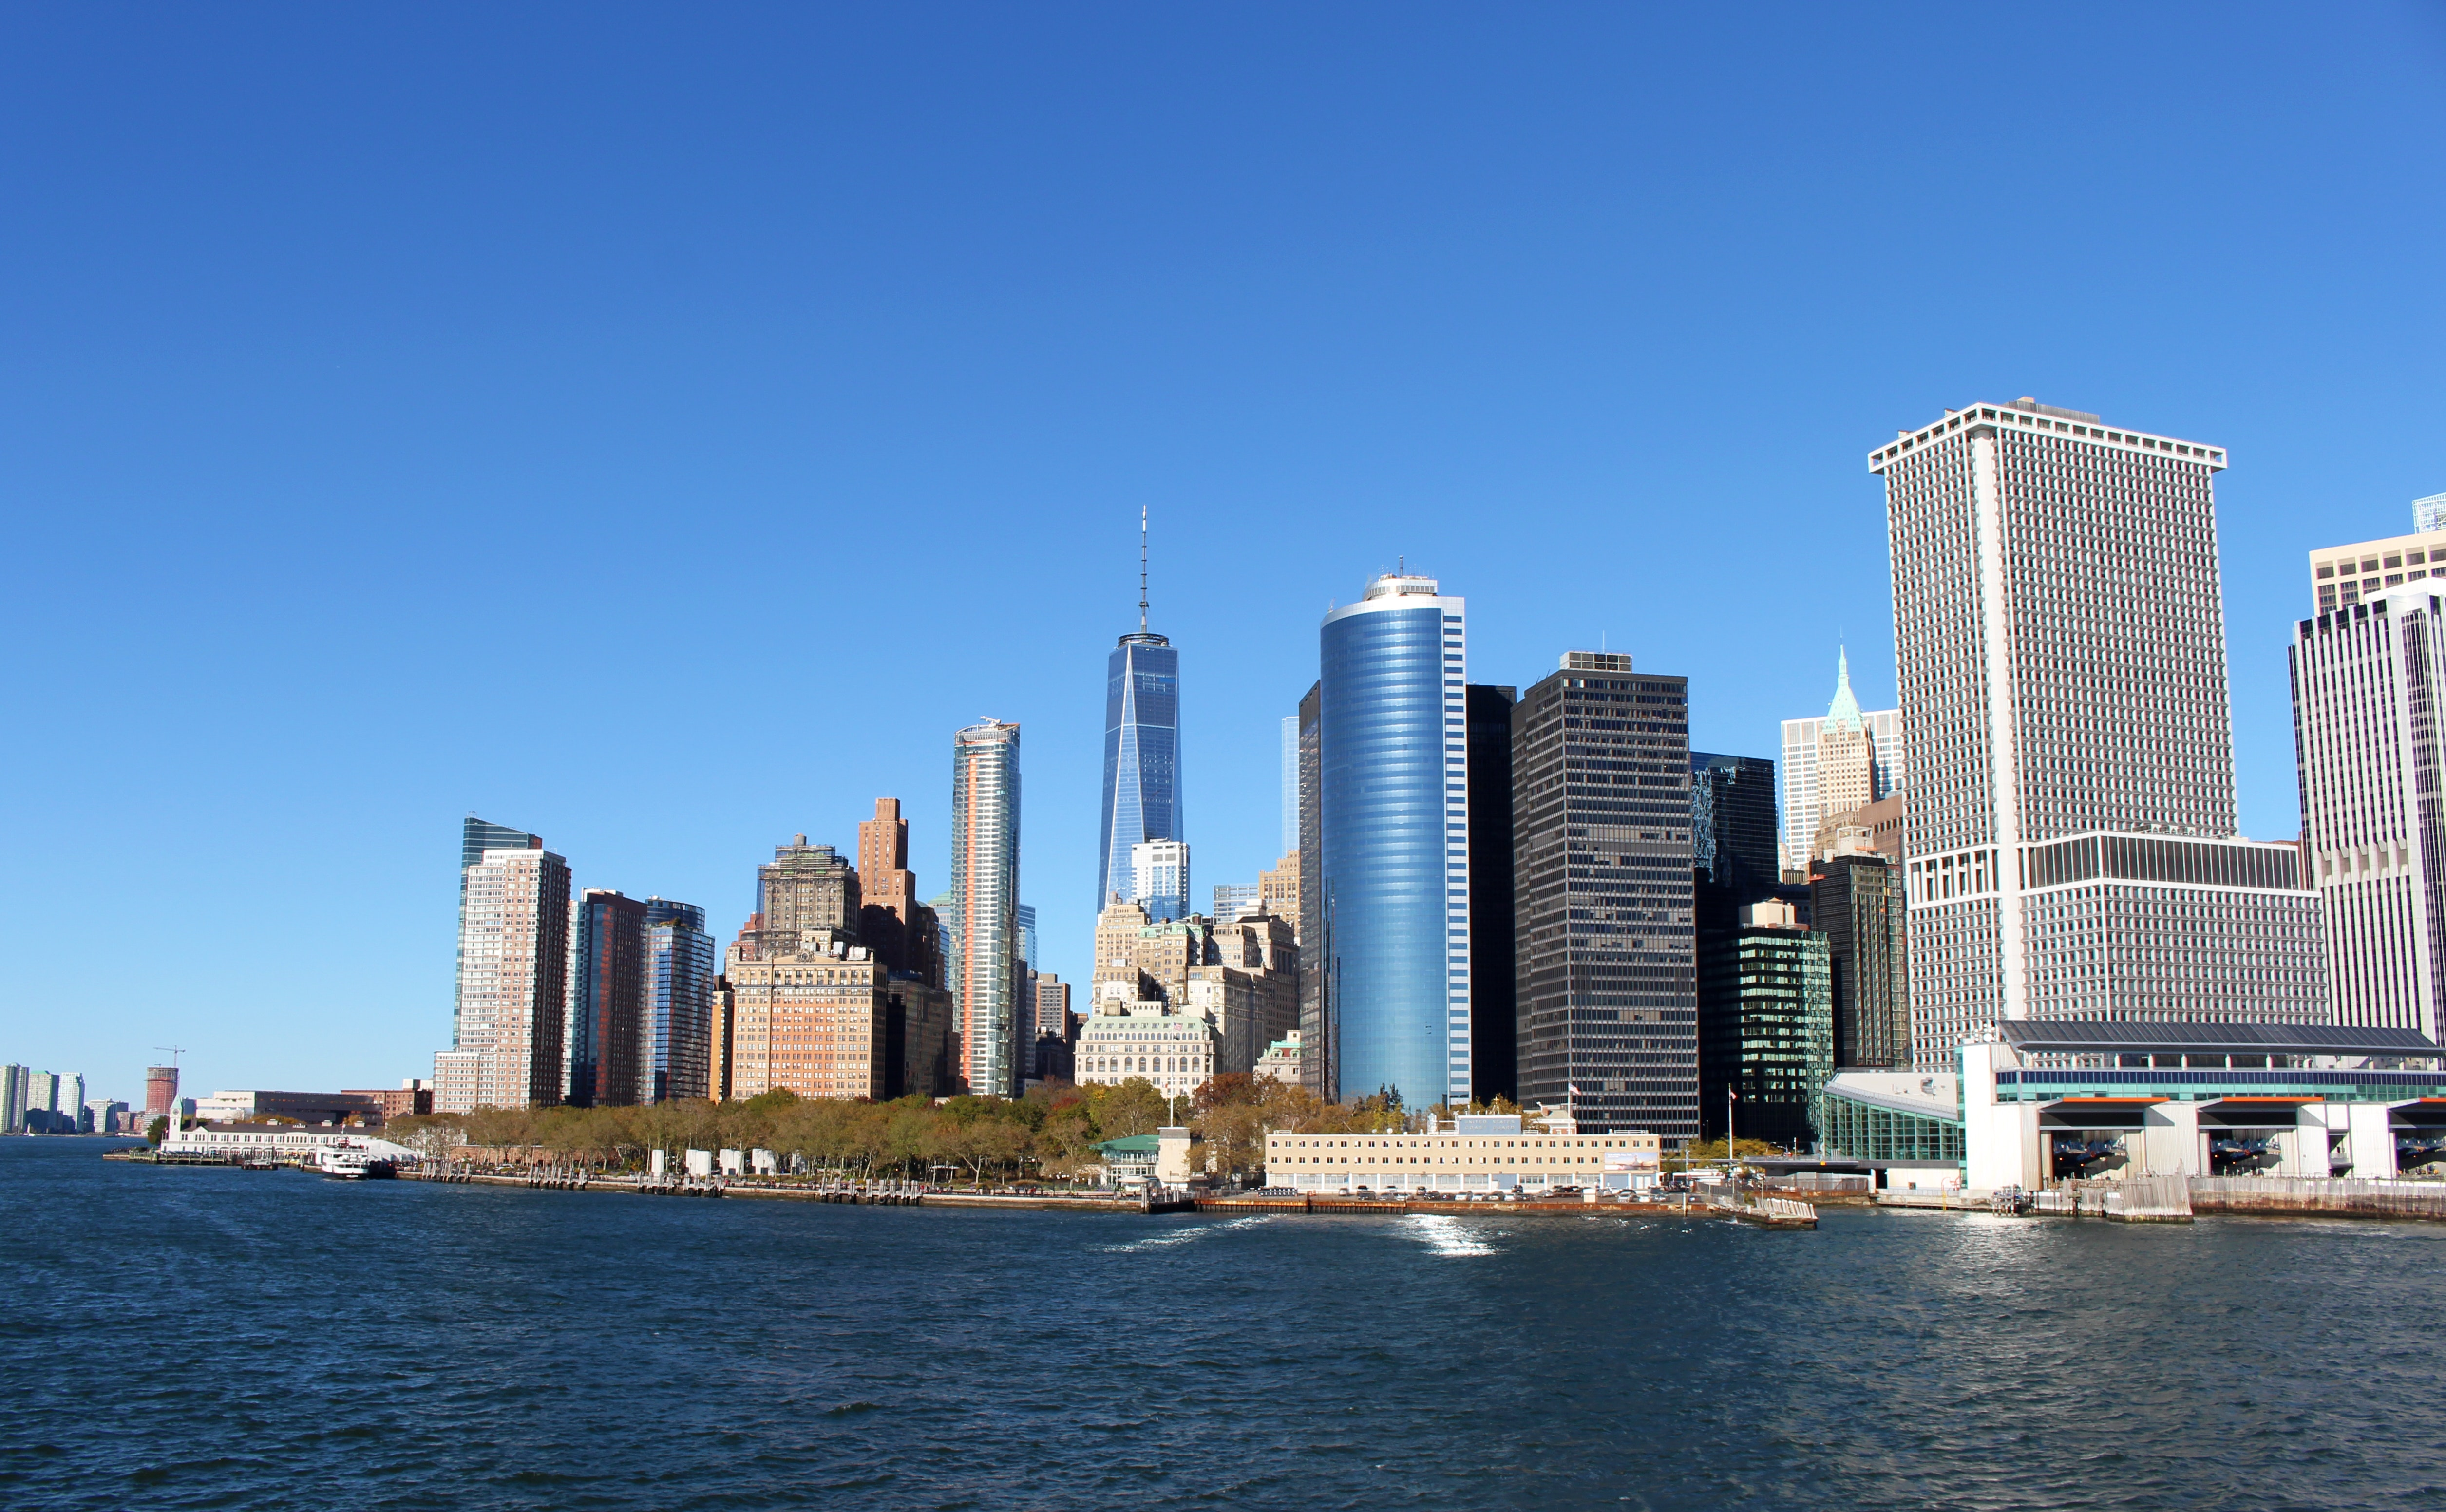 World trade center in cityscape photography